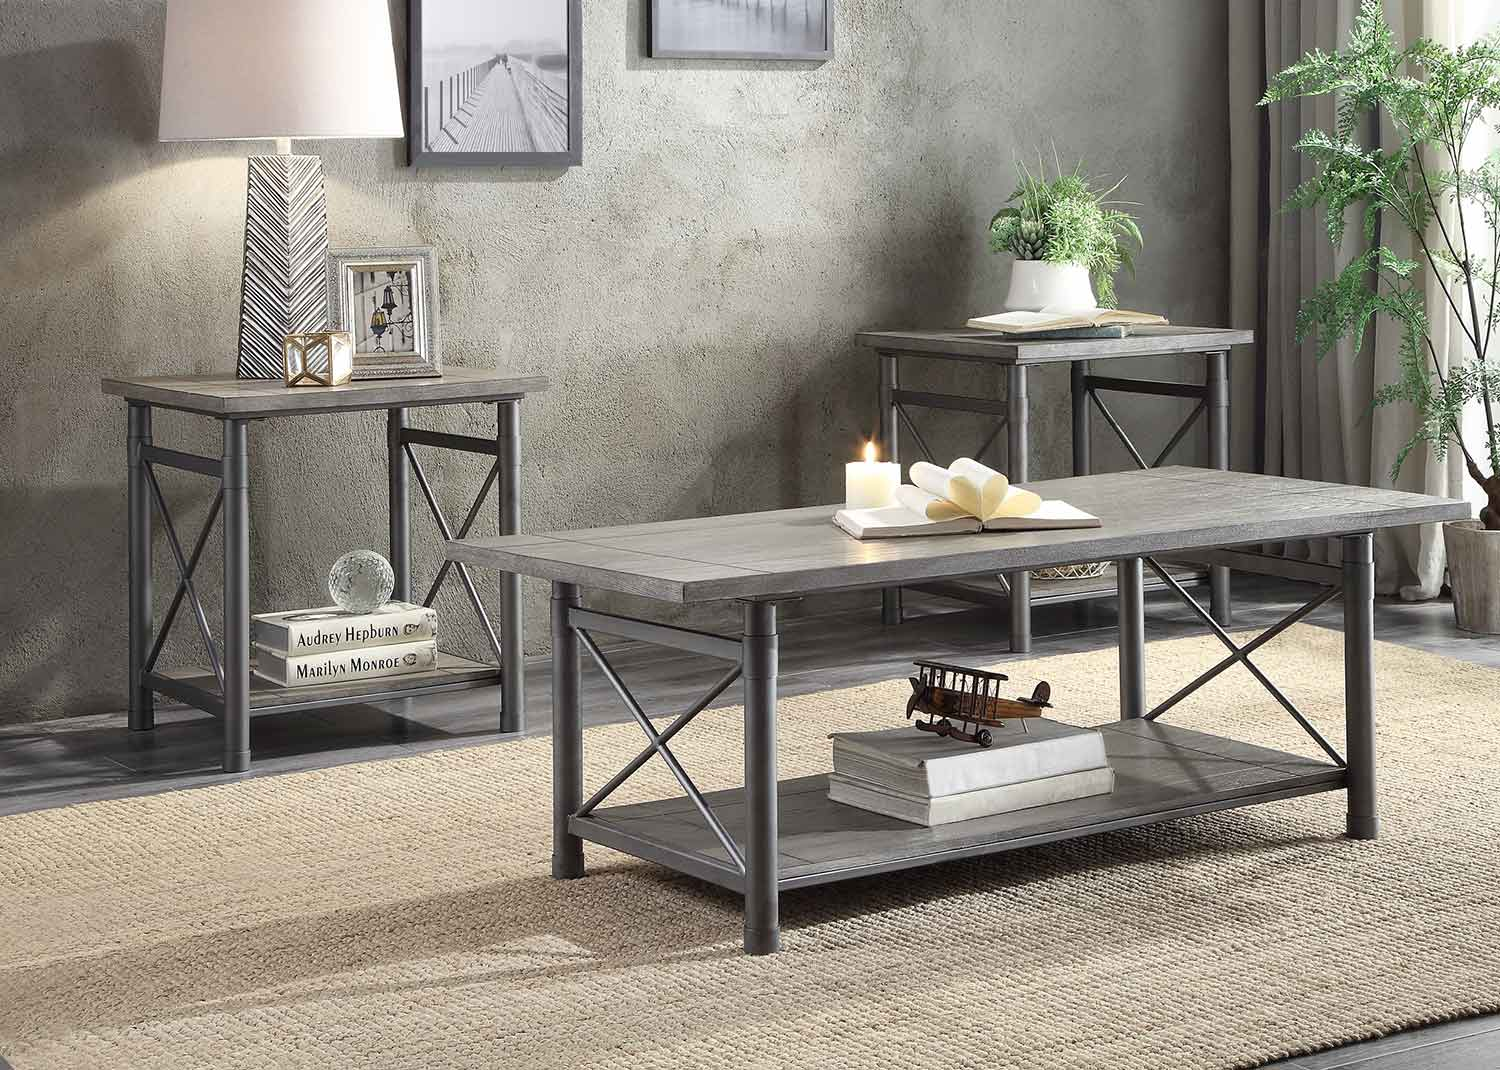 Homelegance Laurel Hill 3 Piece Occasional Table Set - Gray